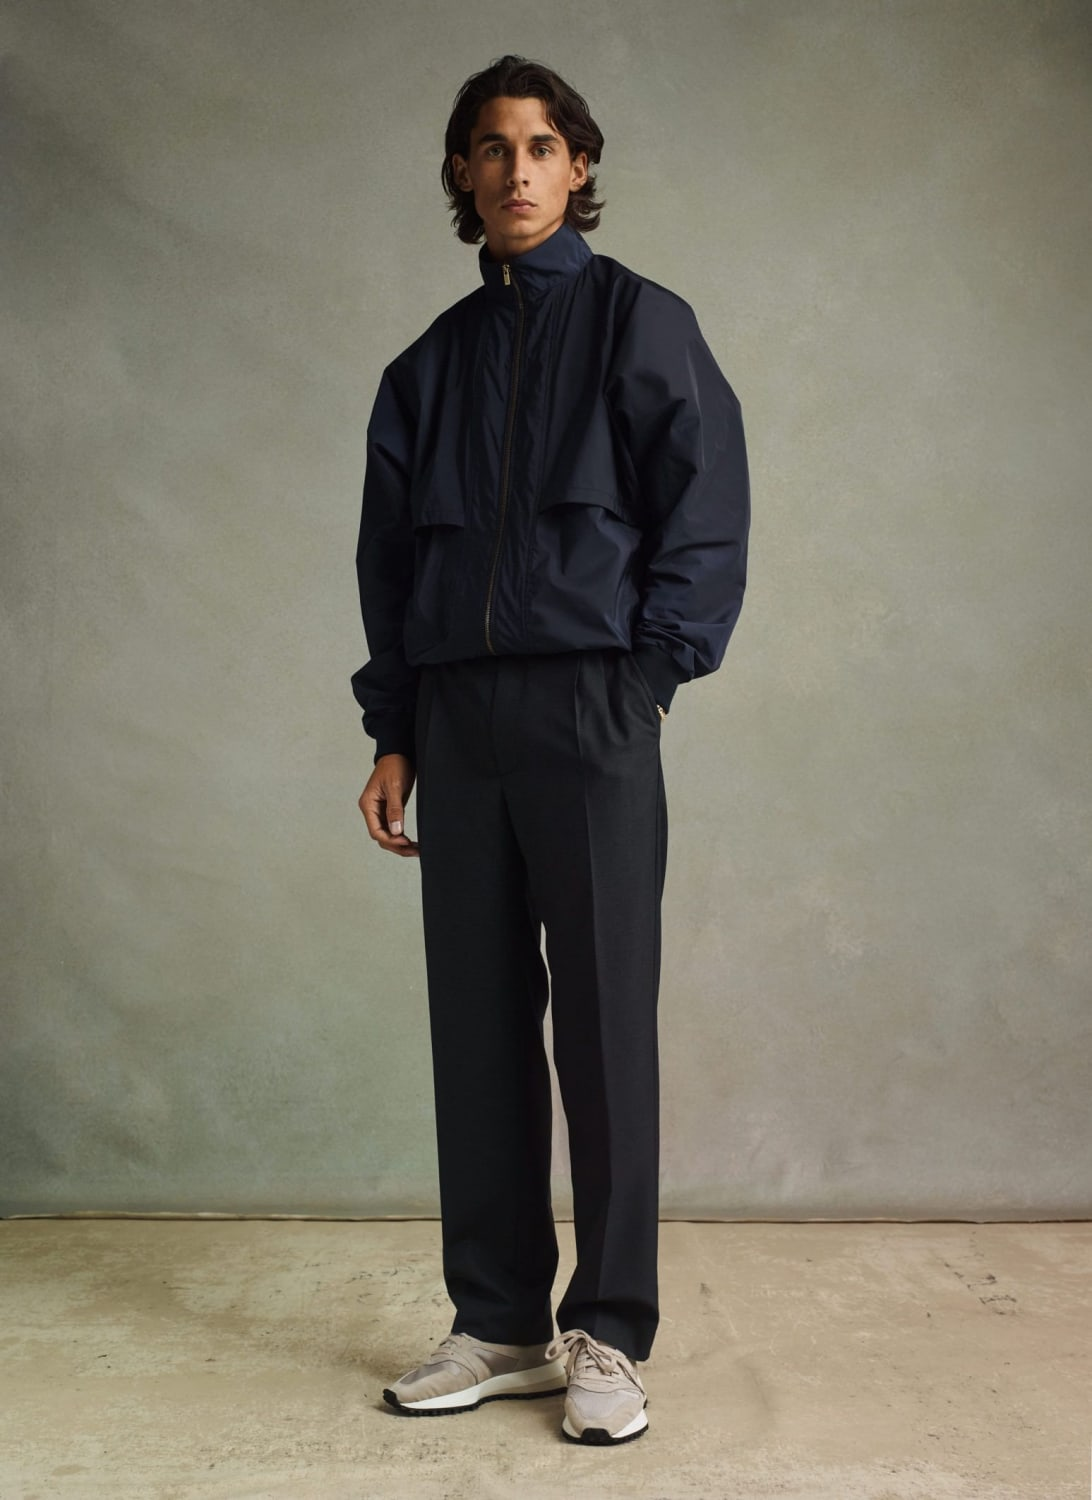 Seventh Collection Lookbook Look 30